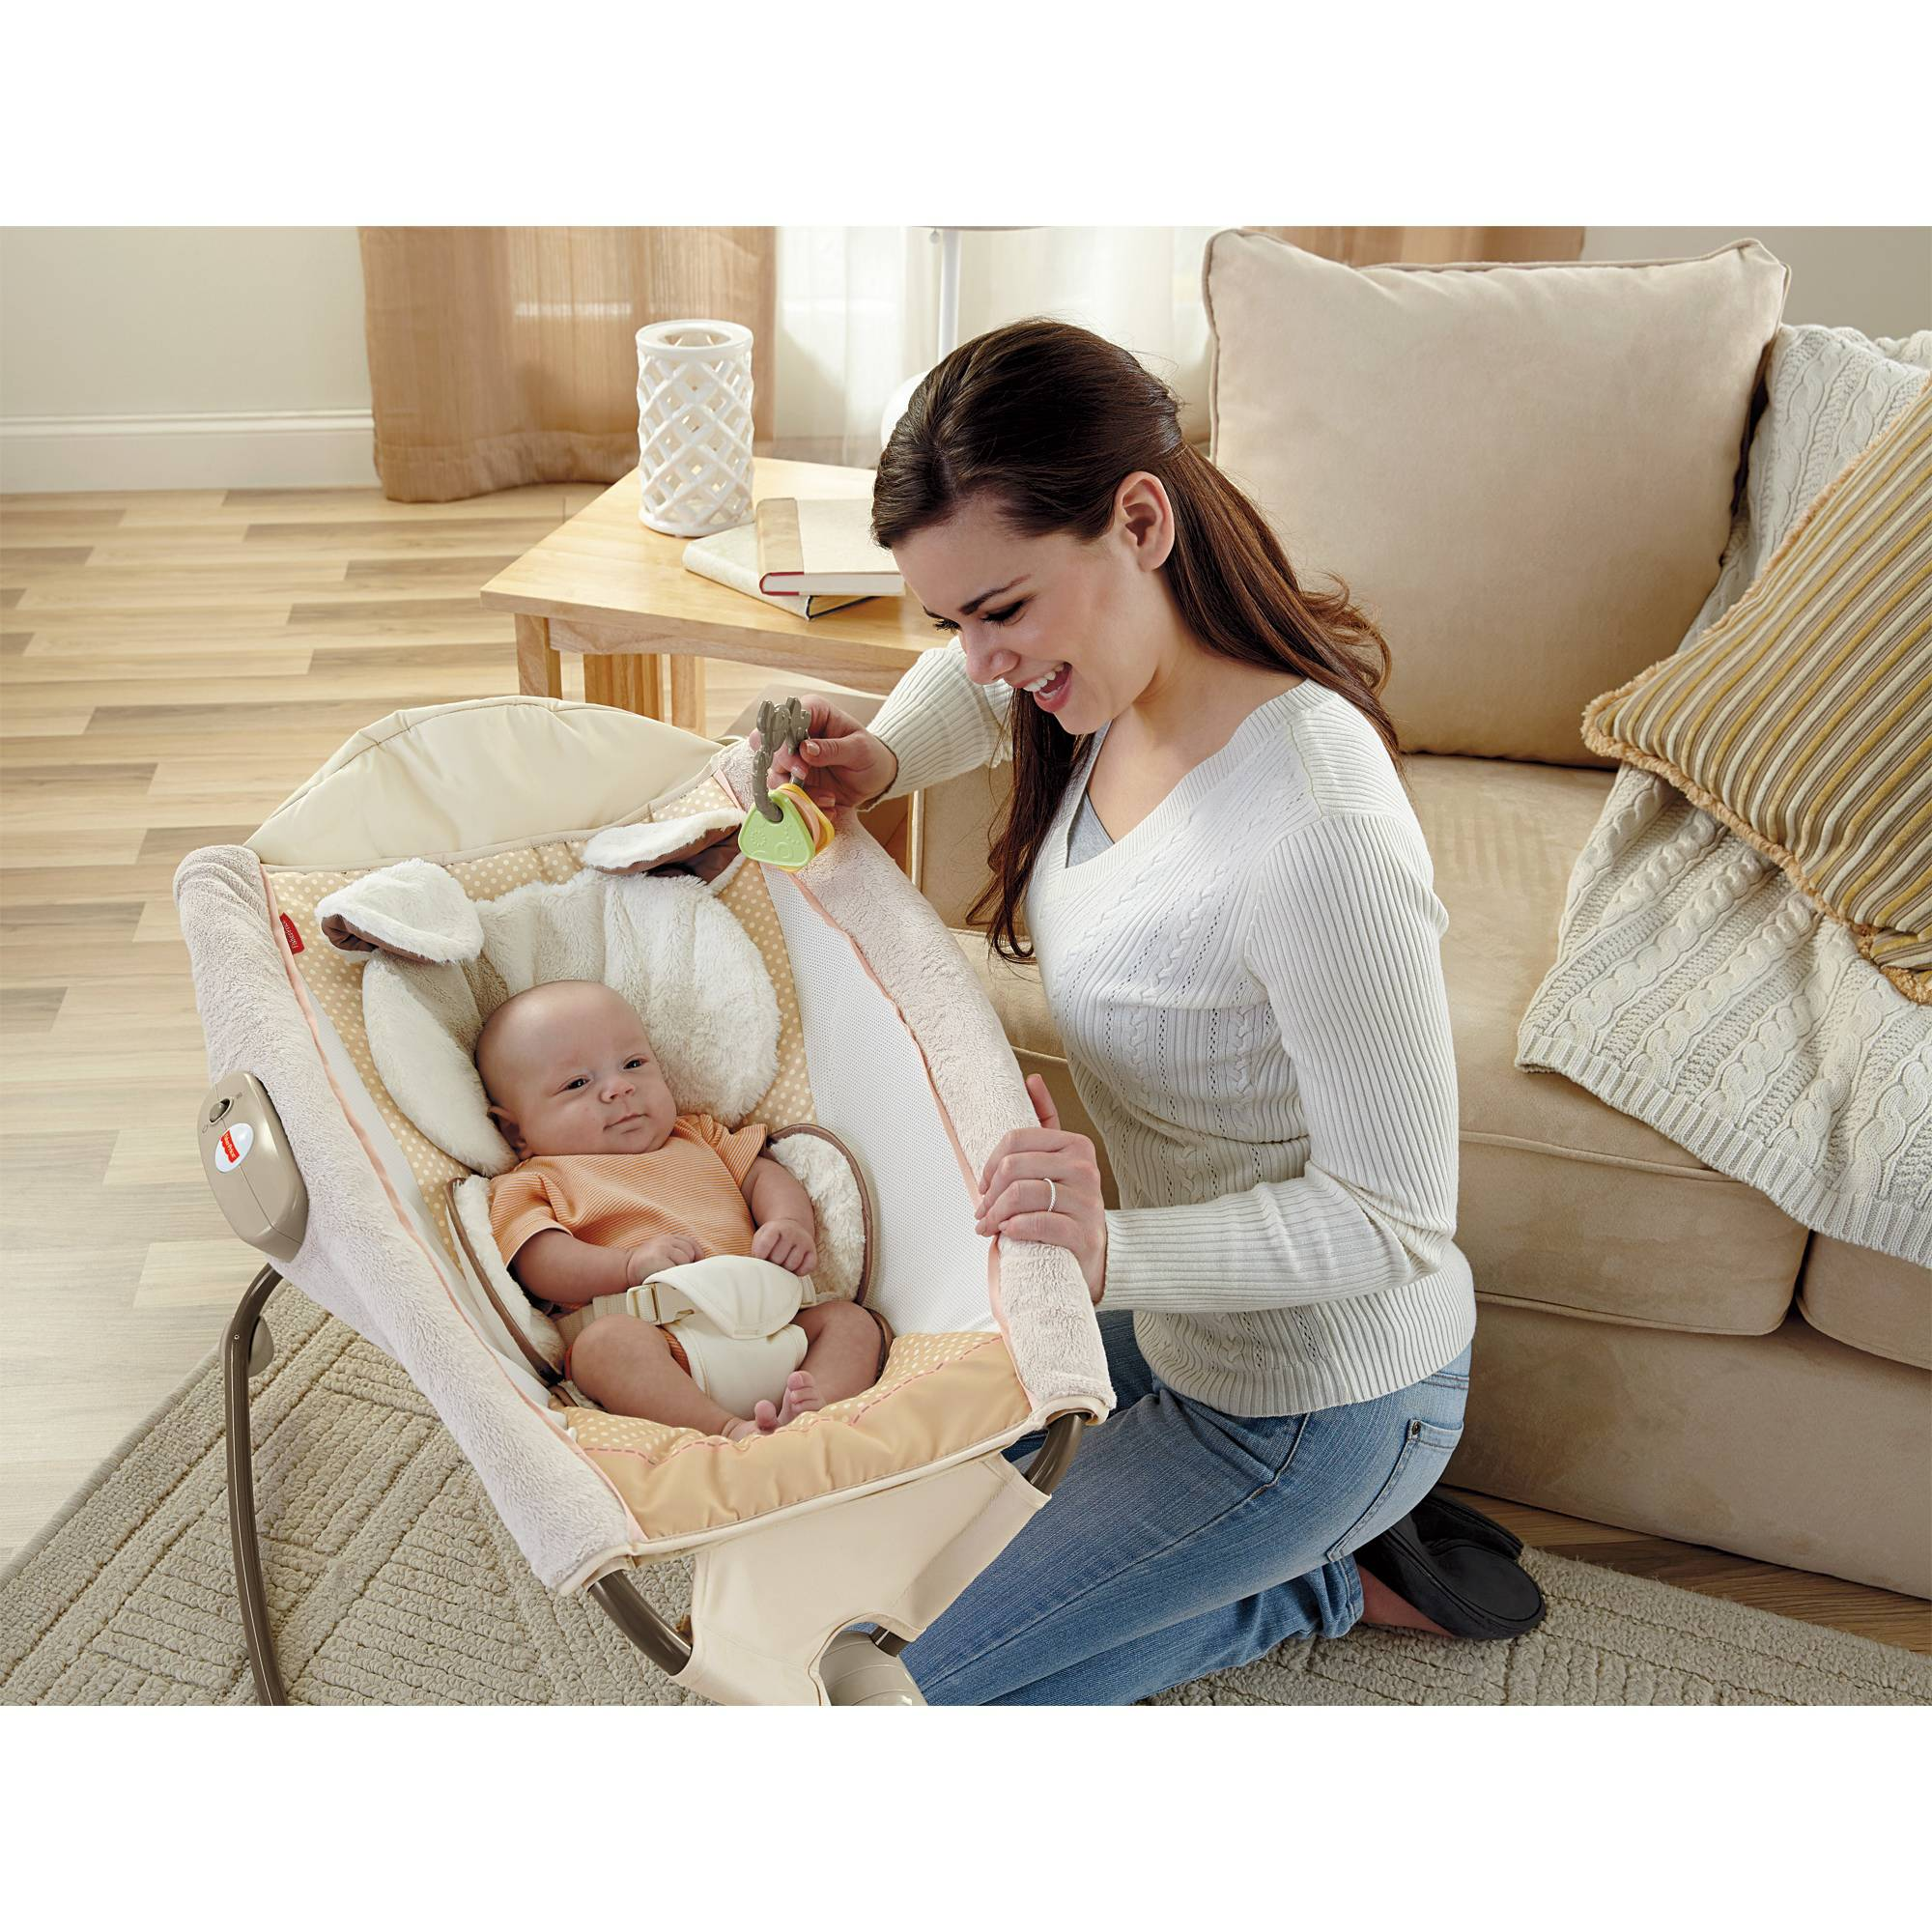 Baby Rocker Bed Baby Bedside Sleeper Inclined Rocker Vibrating Portable